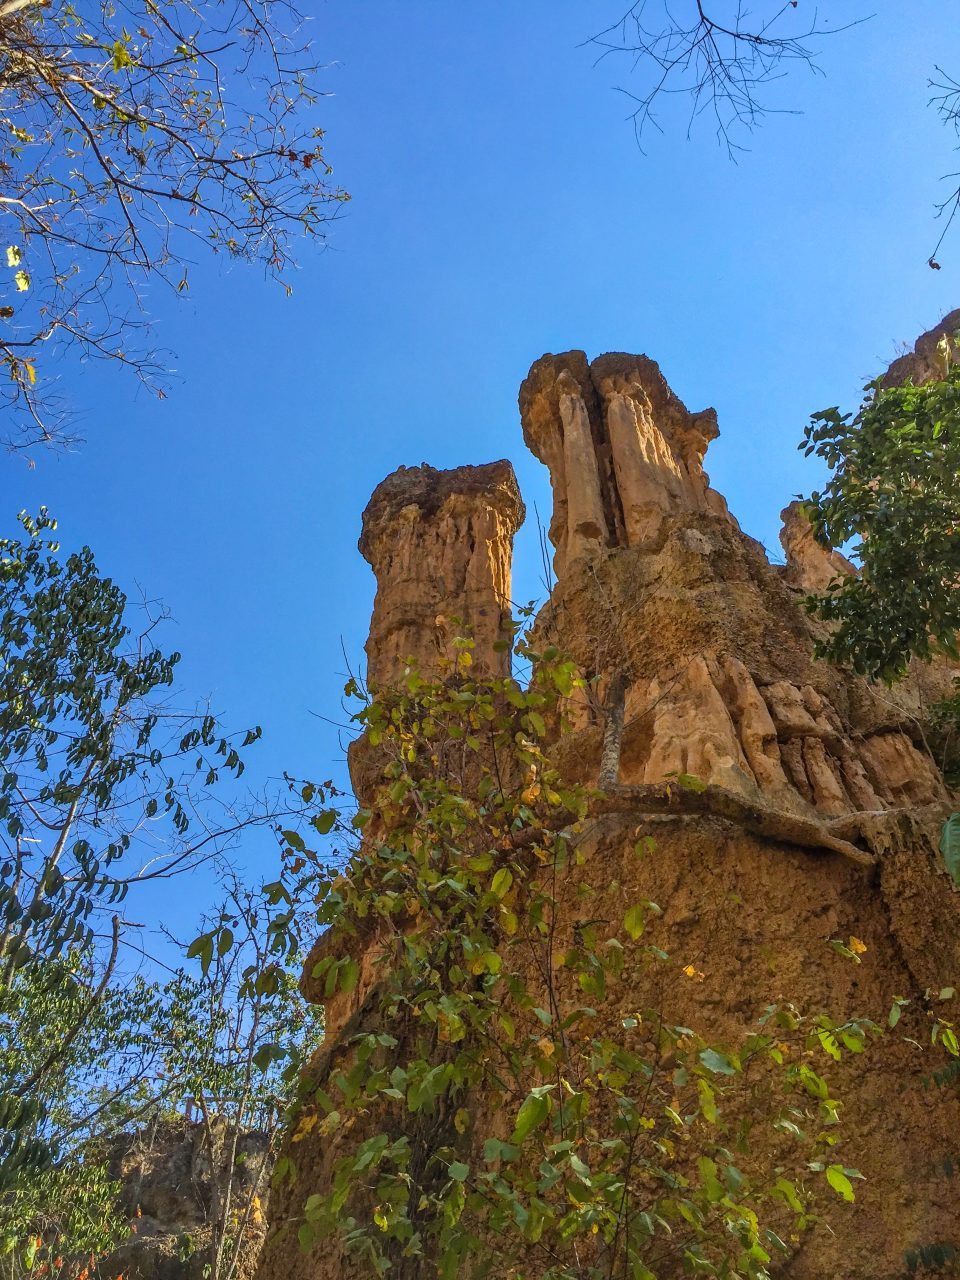 The best time to visit Pha Chor Canyon is the cool season, before the burning season starts in Thailand